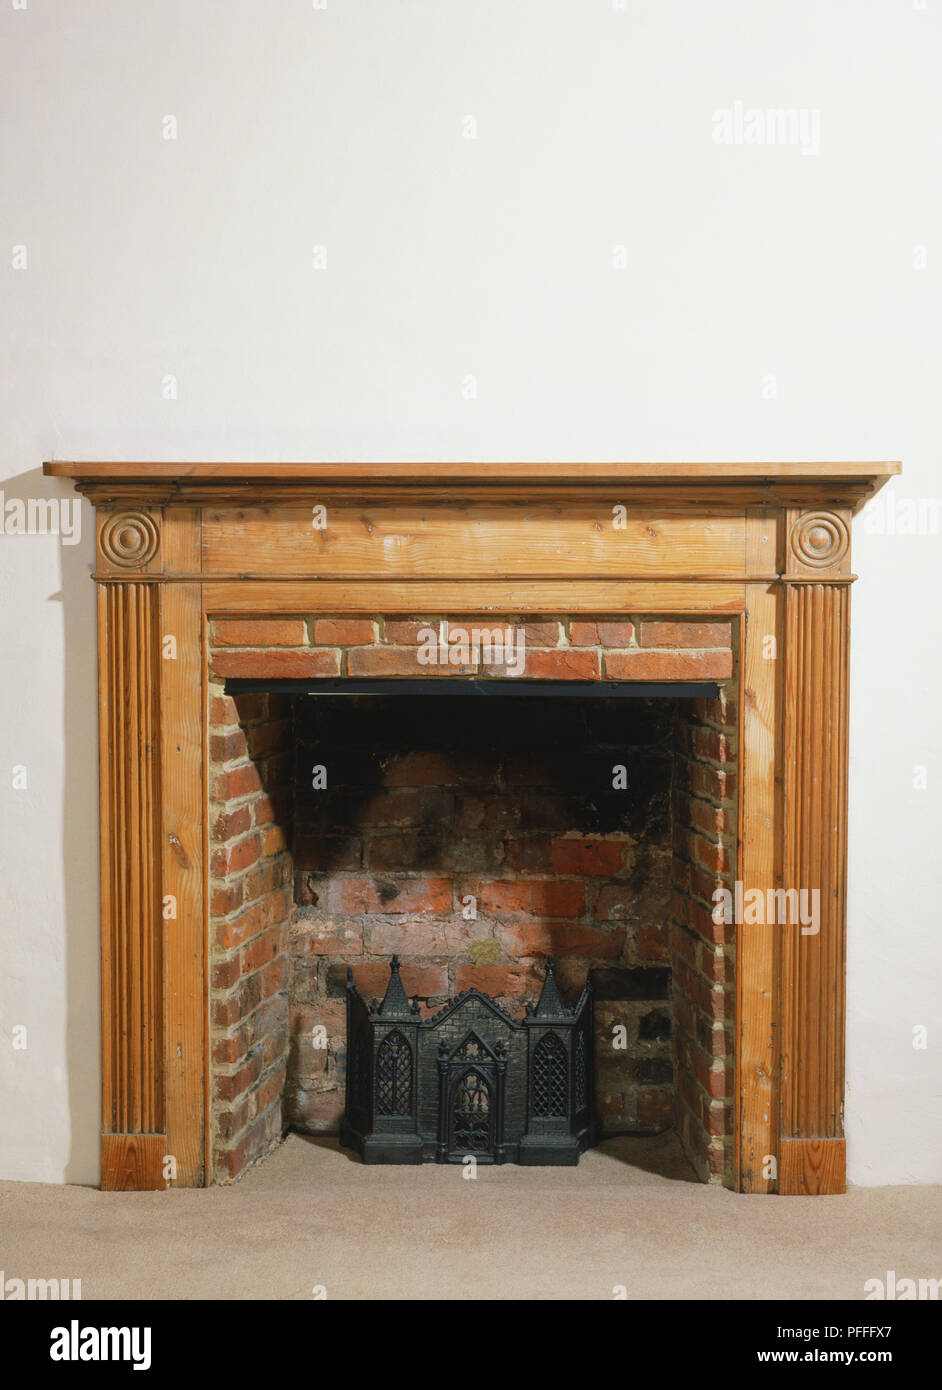 Red Brick Fireplace With A Wooden Frame And Mantlepiece Front